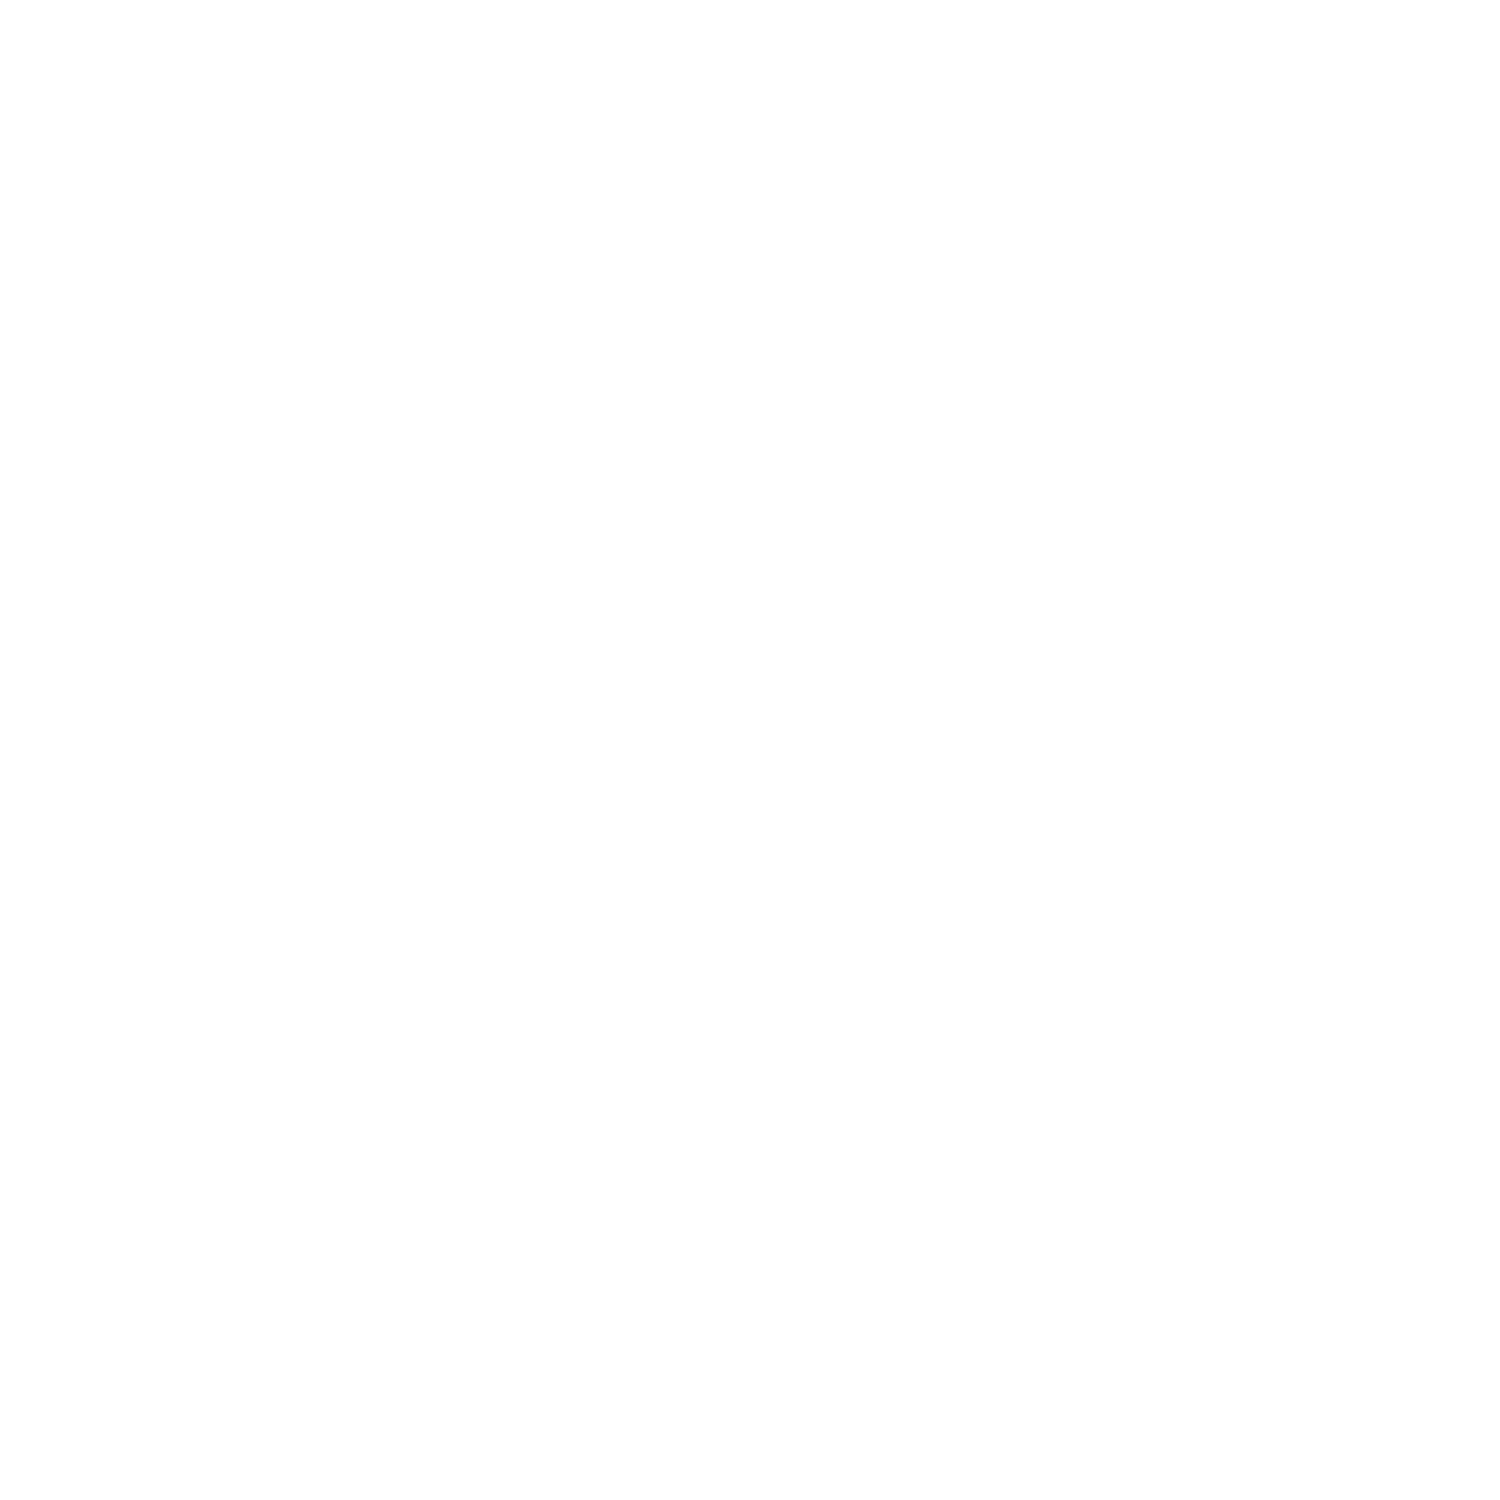 Collective Real Estate